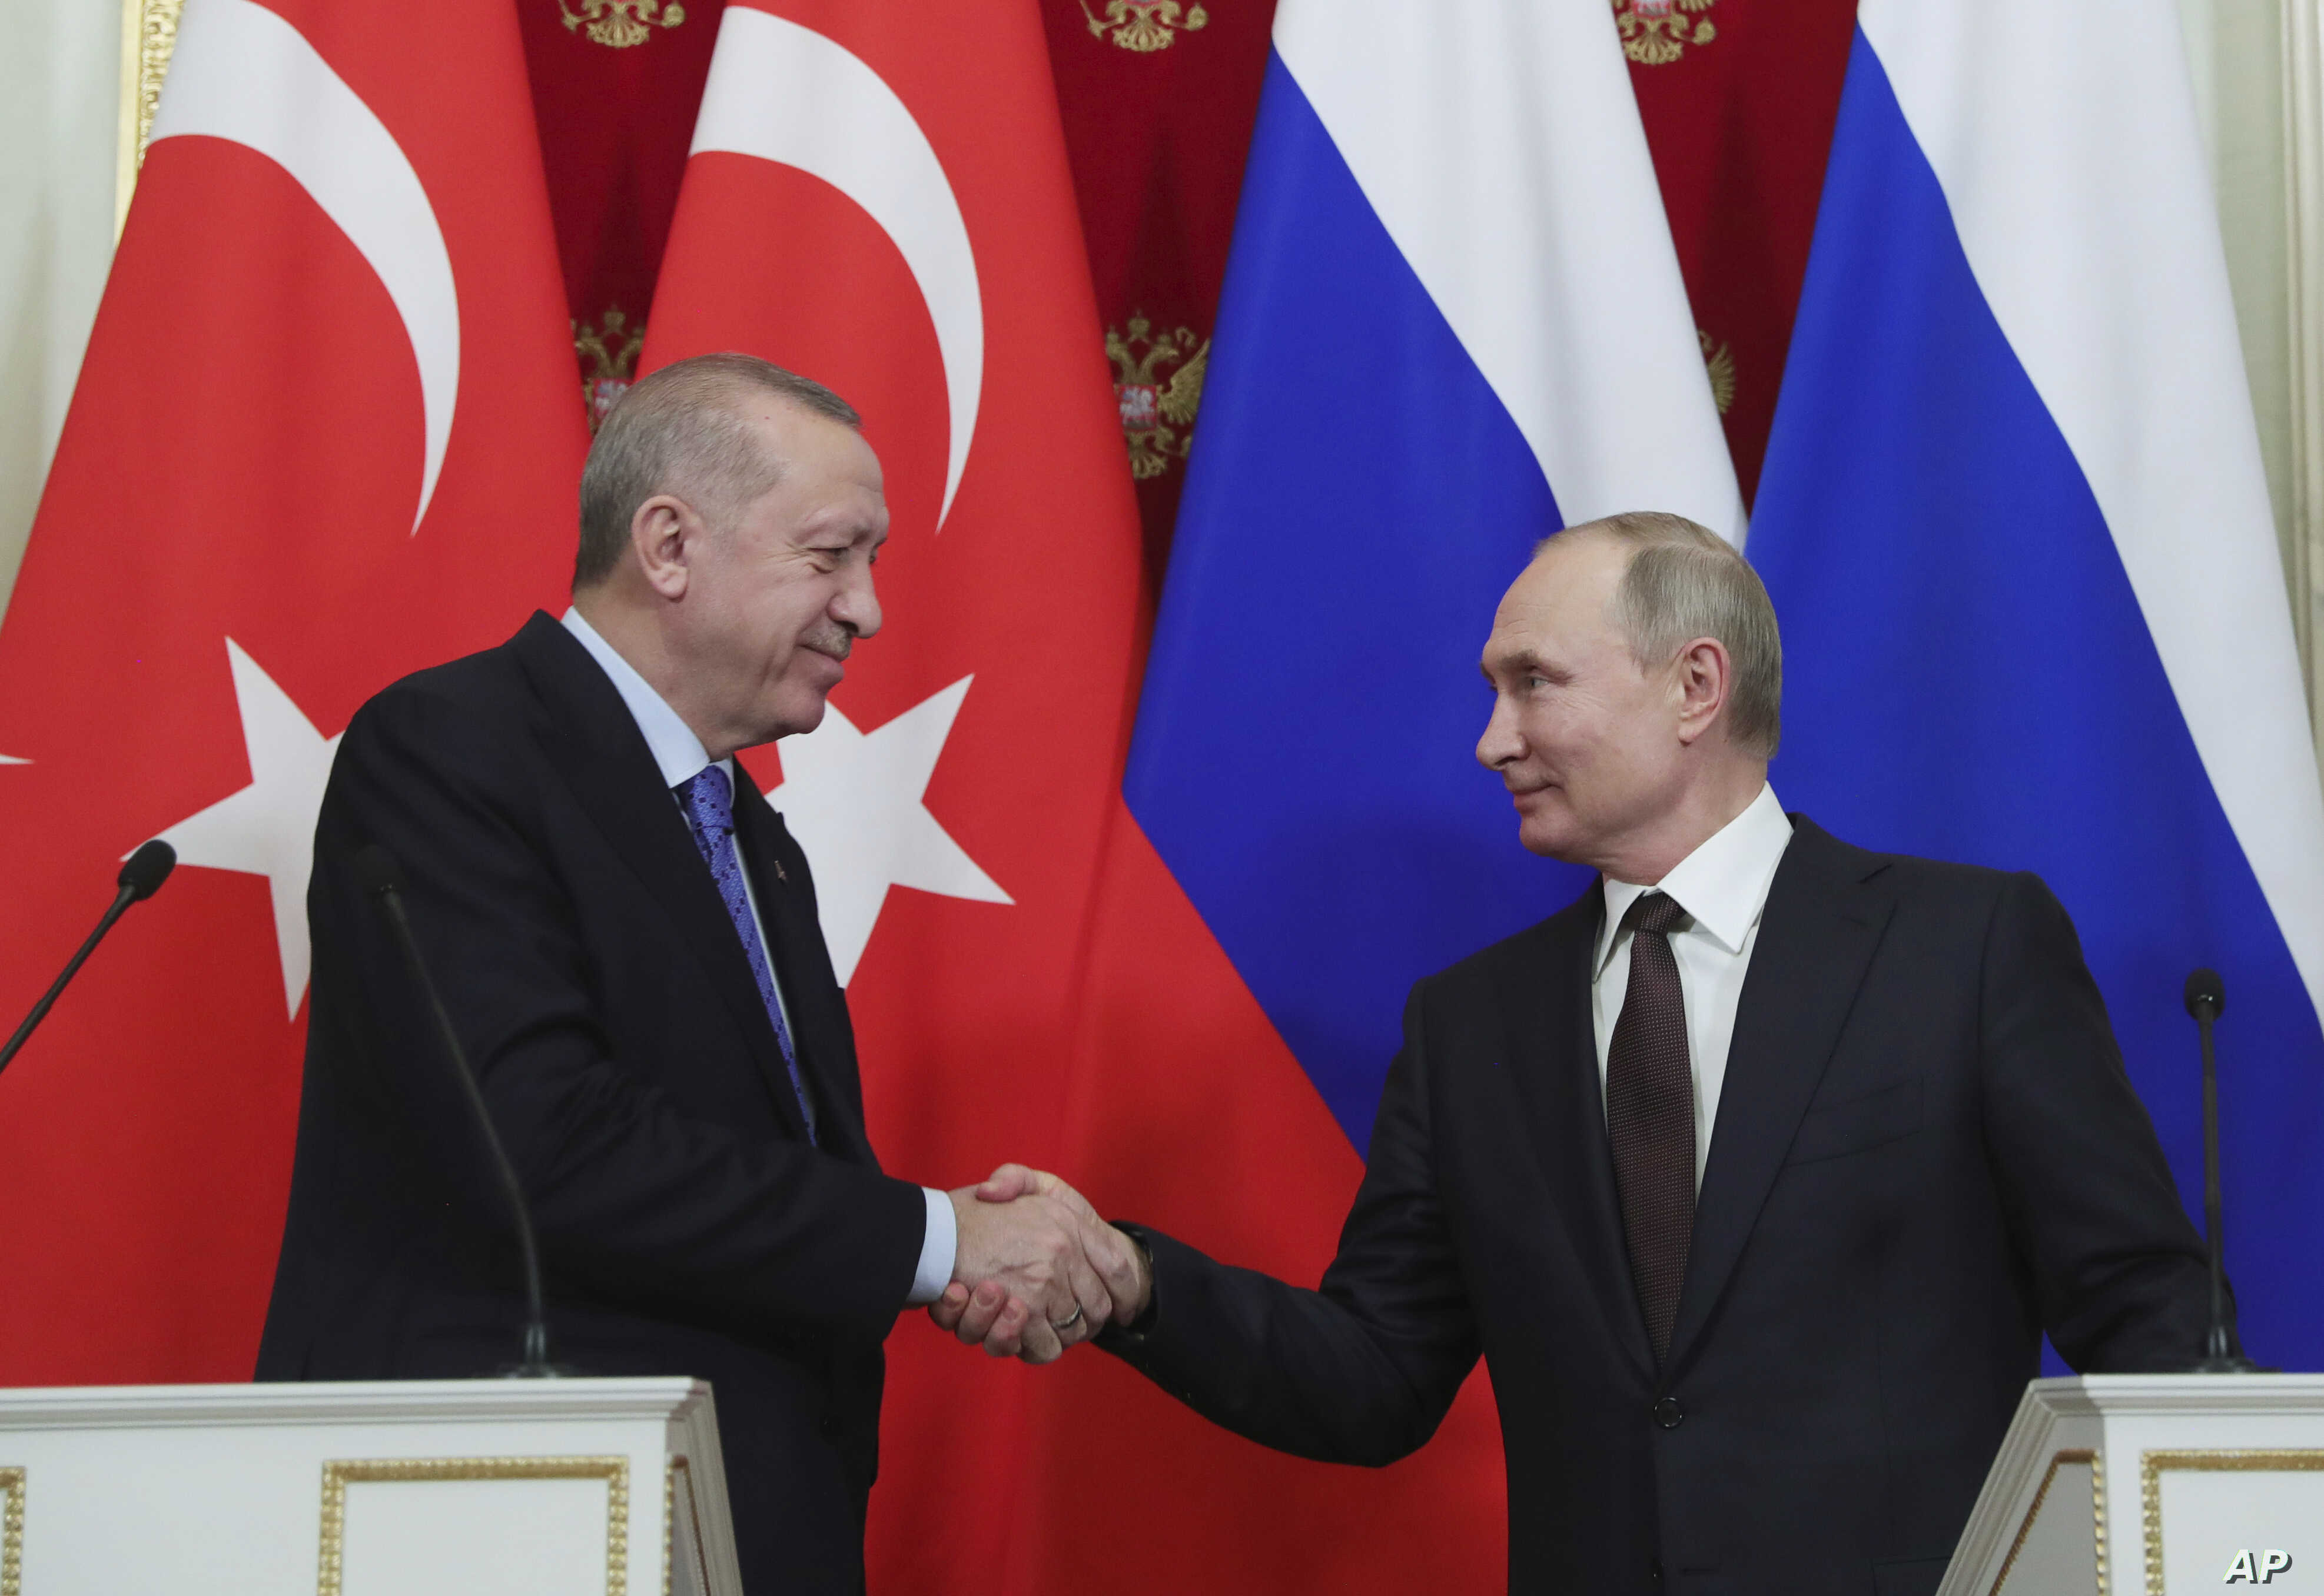 Russia's President Vladimir Putin, right, and Turkish President Recep Tayyip Erdogan shake hands after a joint news conference…